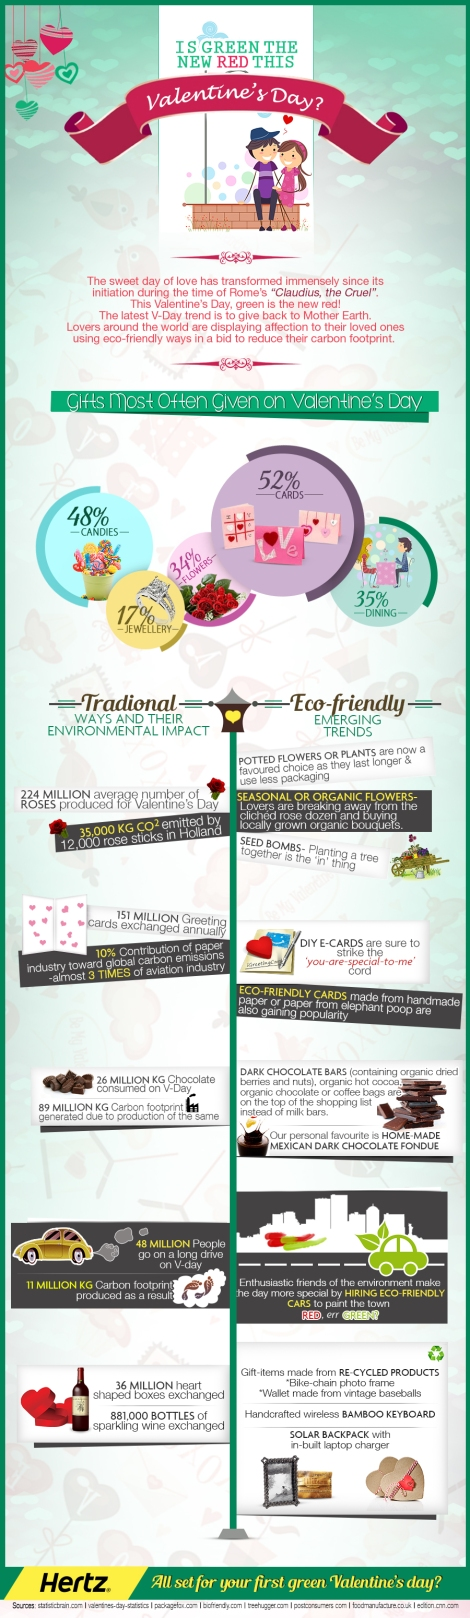 Hertz_Infographic_VDay_English (3)